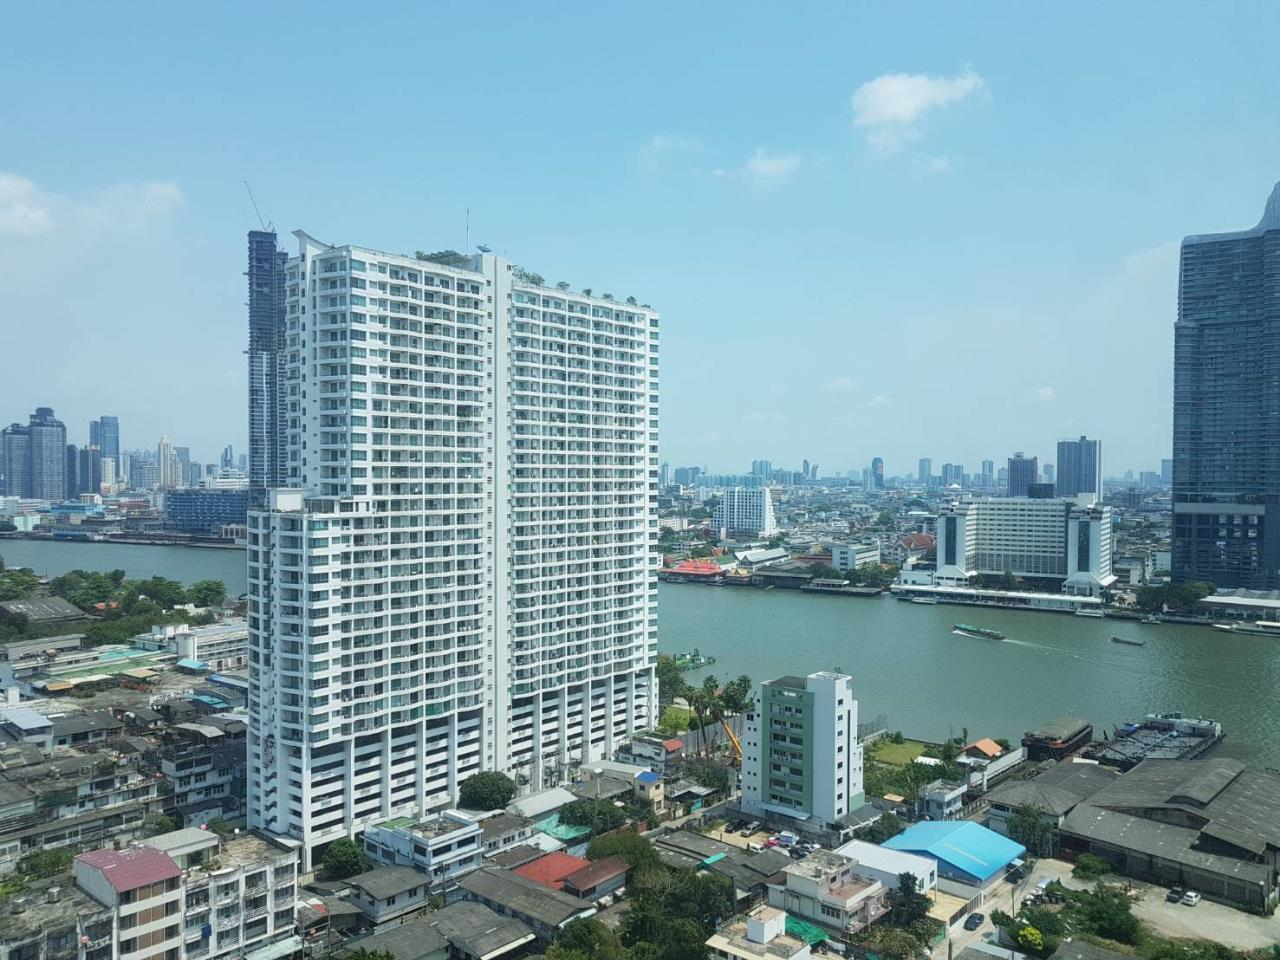 SALA ESTATE Agency's WATERMARK CHAOPHRAYA RIVER – RIVERSIDE-NEAR ICON SIAM,豪华公寓,河景房, 2卧2卫,家具齐全 6